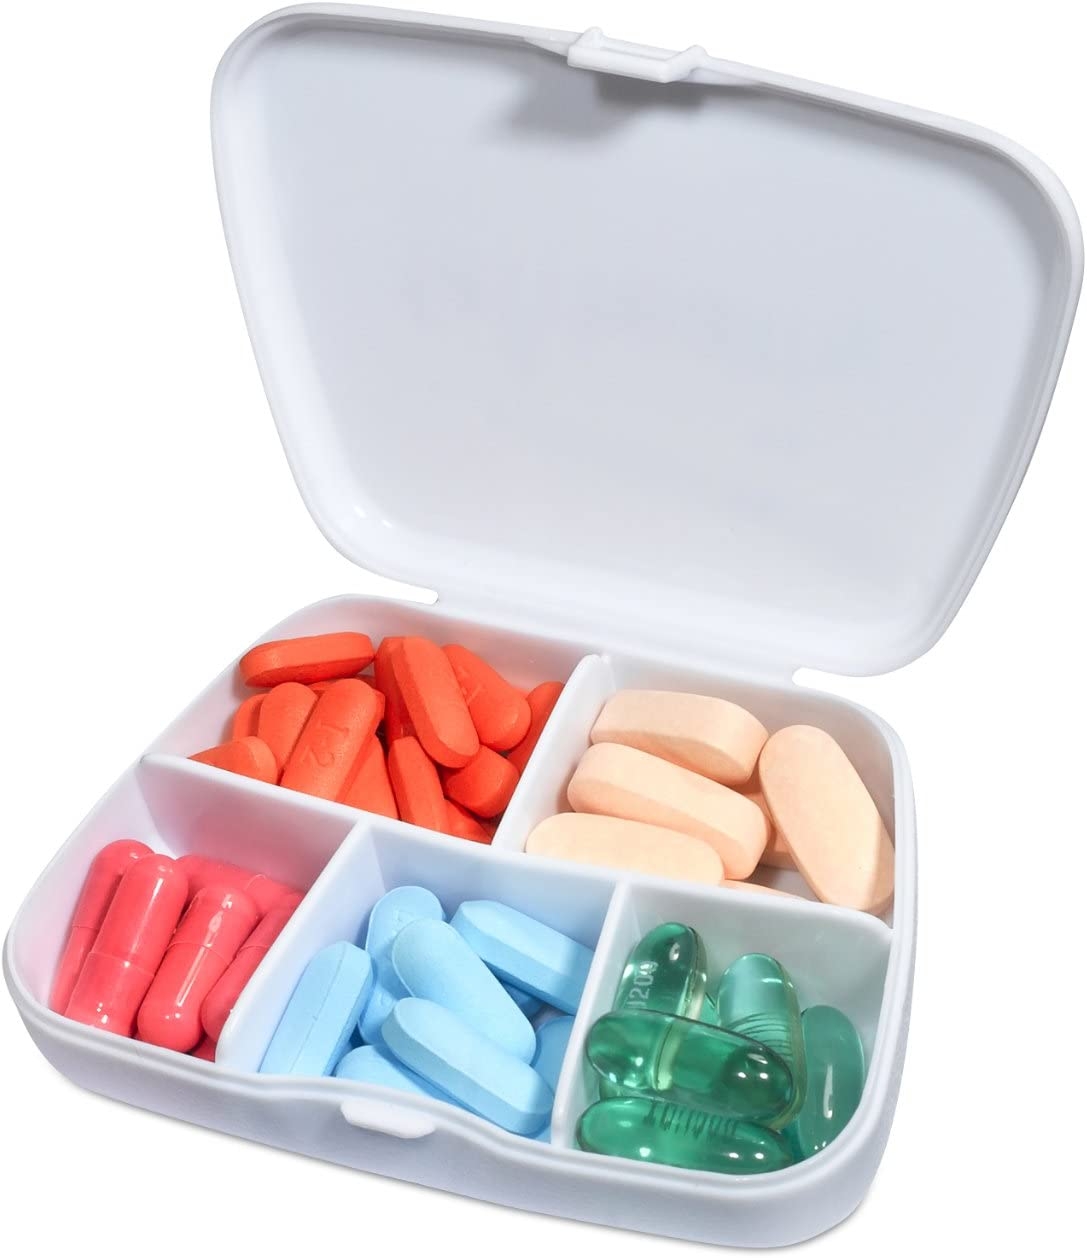 gift for mom gift for her cute farm animal Farmers Market vitamin organizer P55 Lamb pill container supplement holder Pill Box pill case